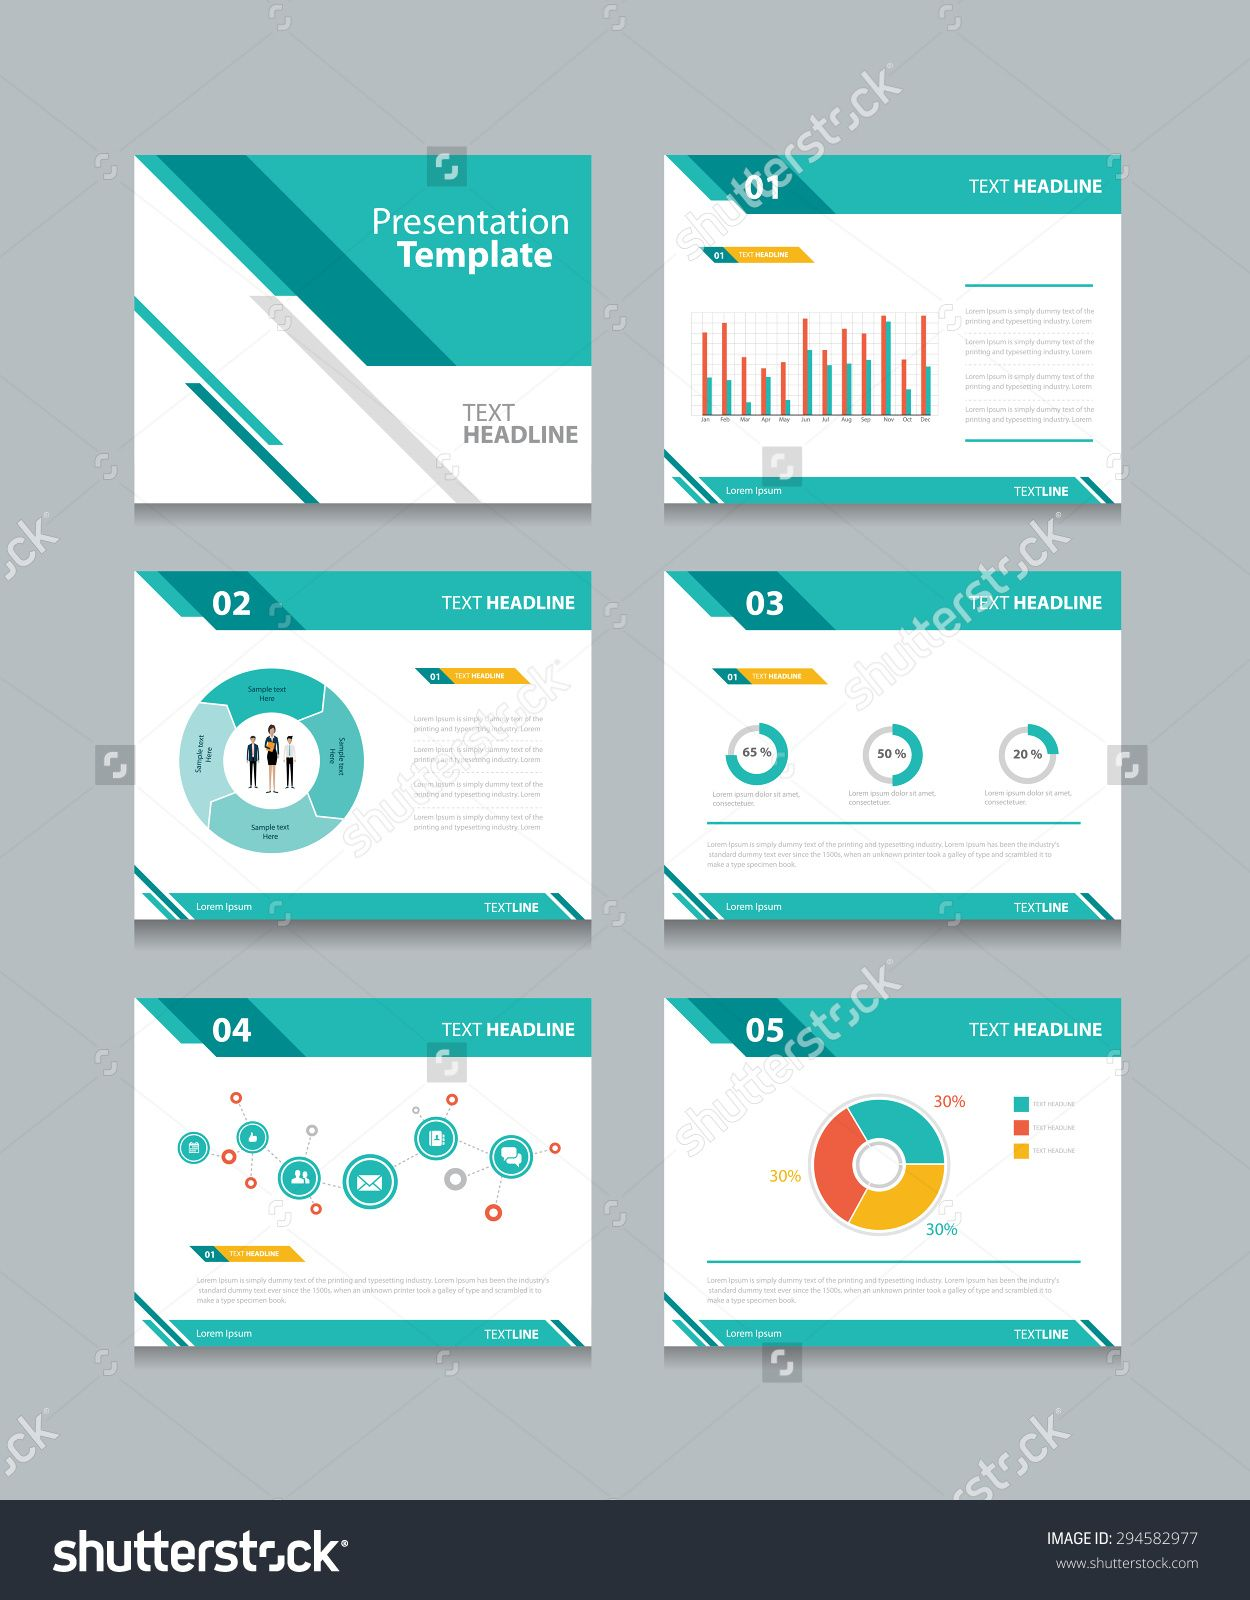 Business presentation template setpowerpoint template design business presentation template setpowerpoint template design backgrounds cheaphphosting